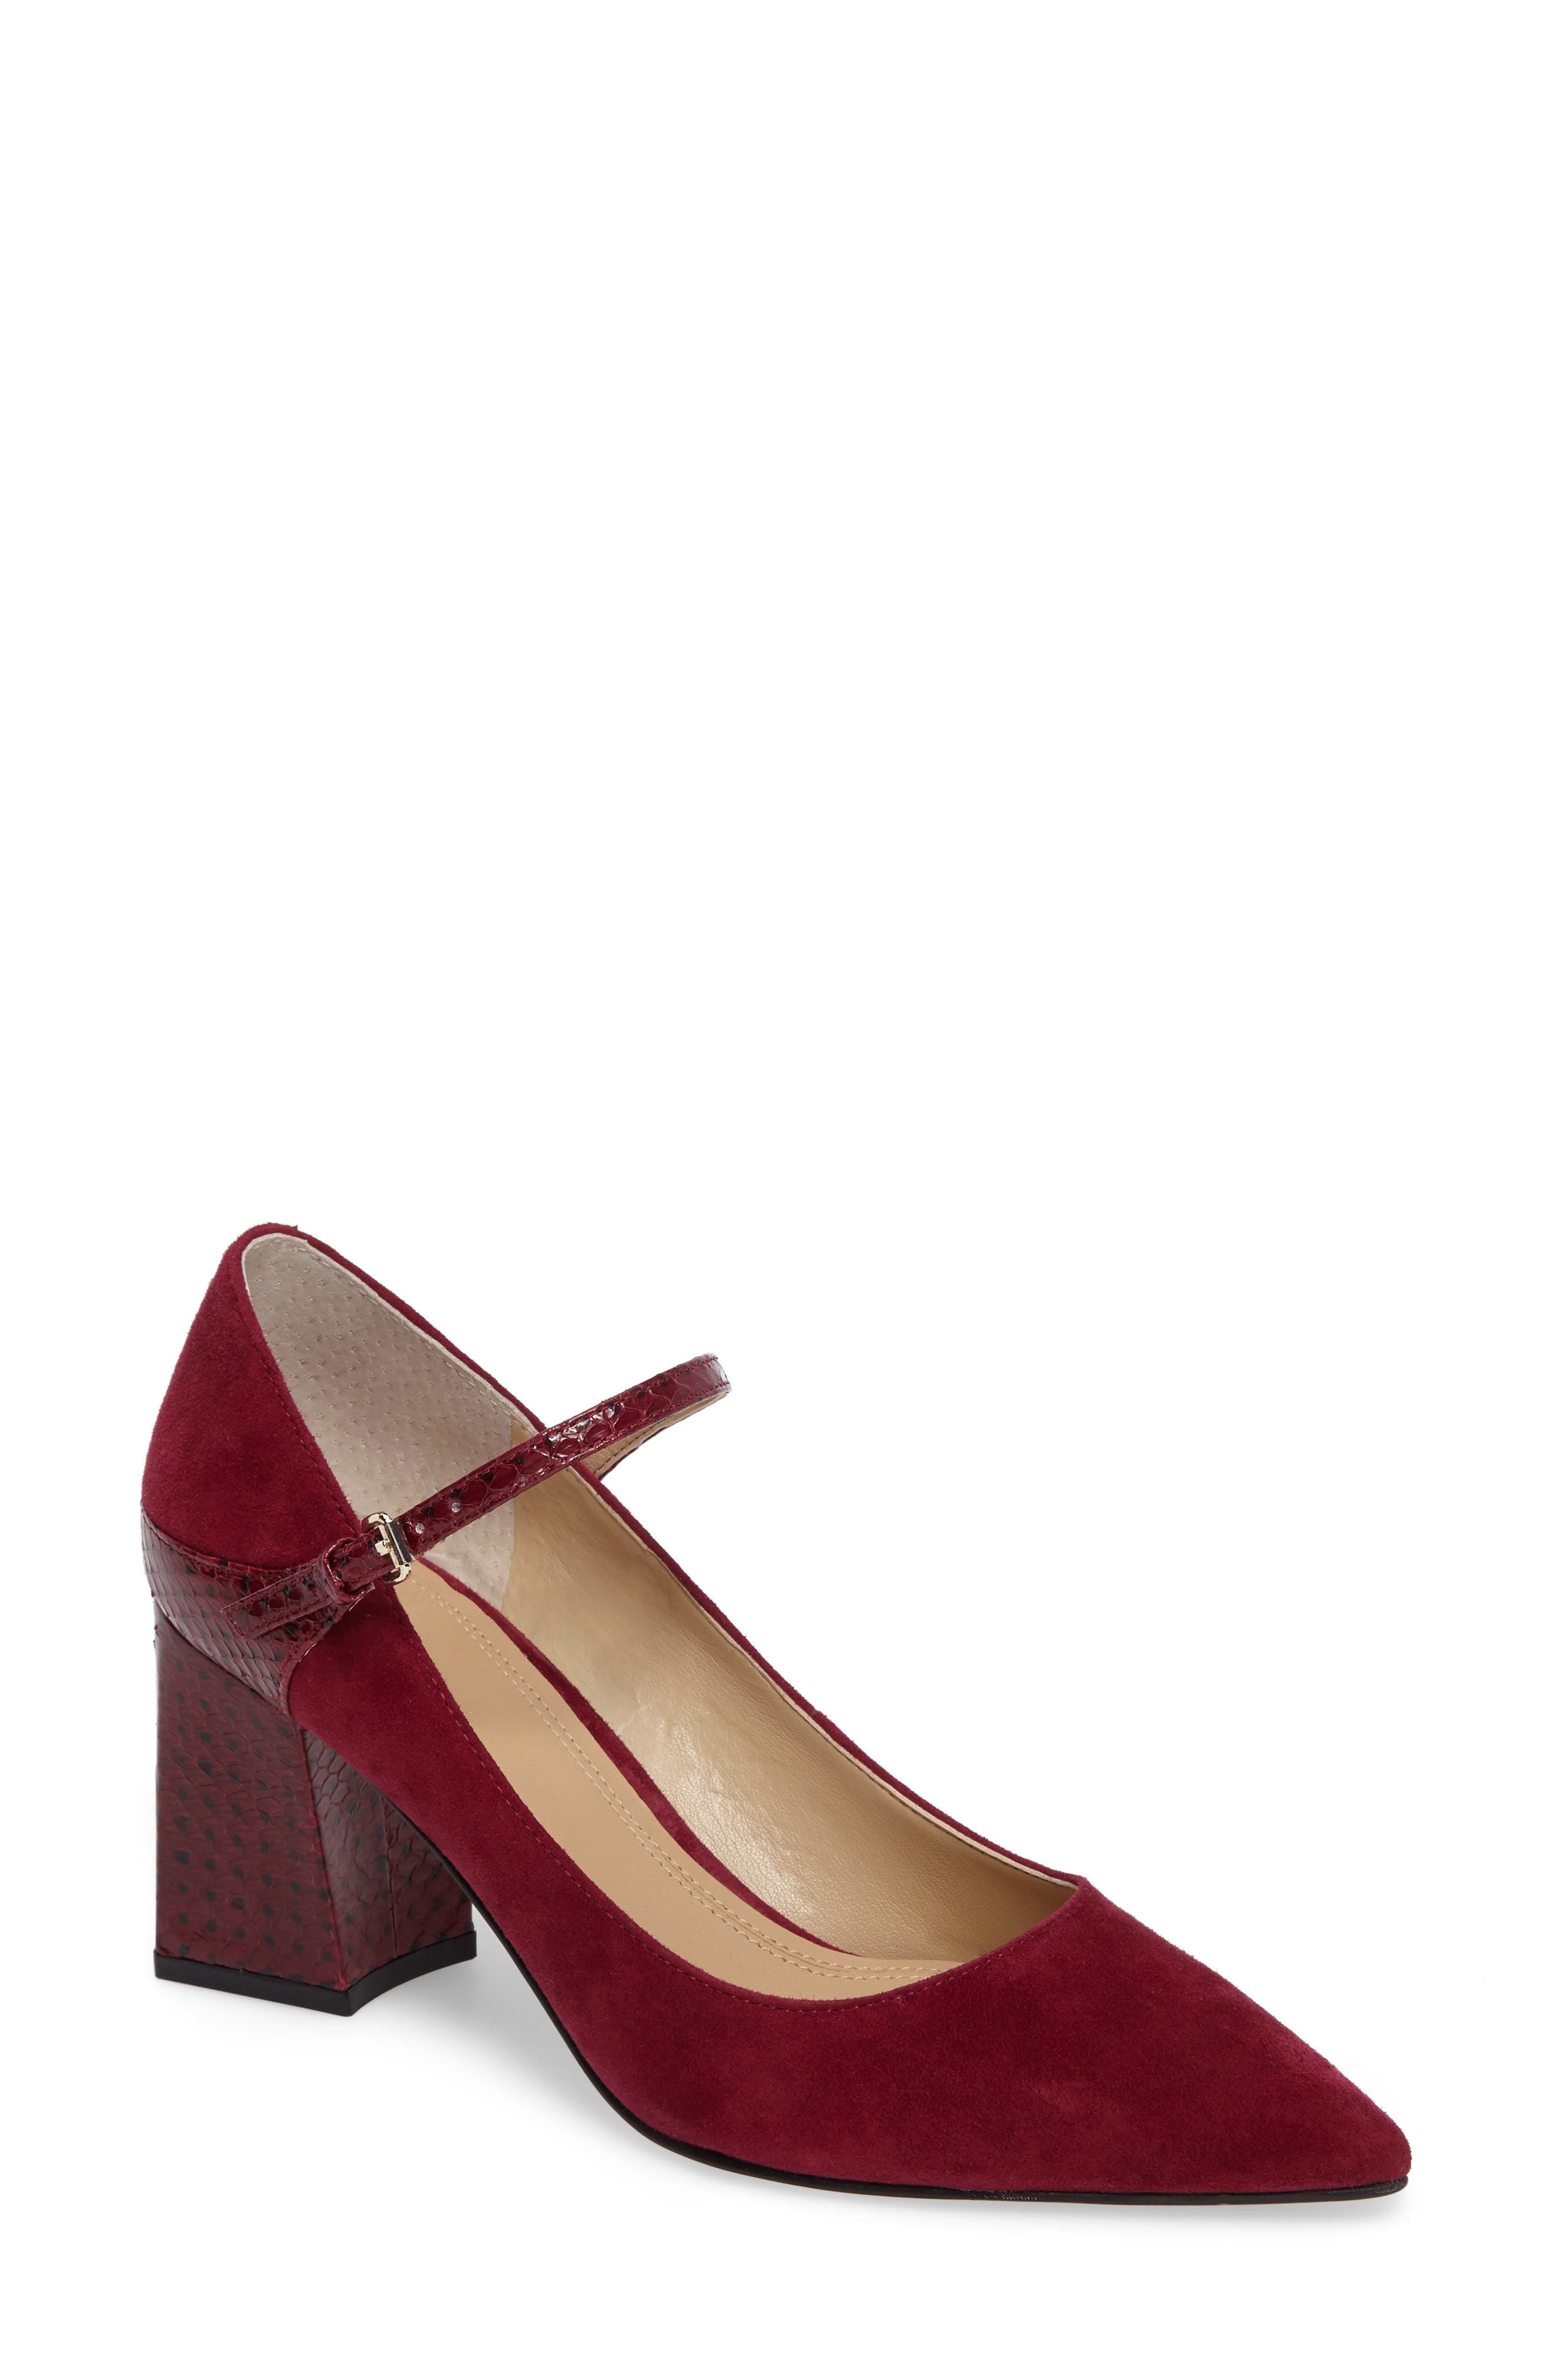 Zullys Snake Embossed Mary Jane Pump,                         Main,                         color, Berry/ Berry Leather